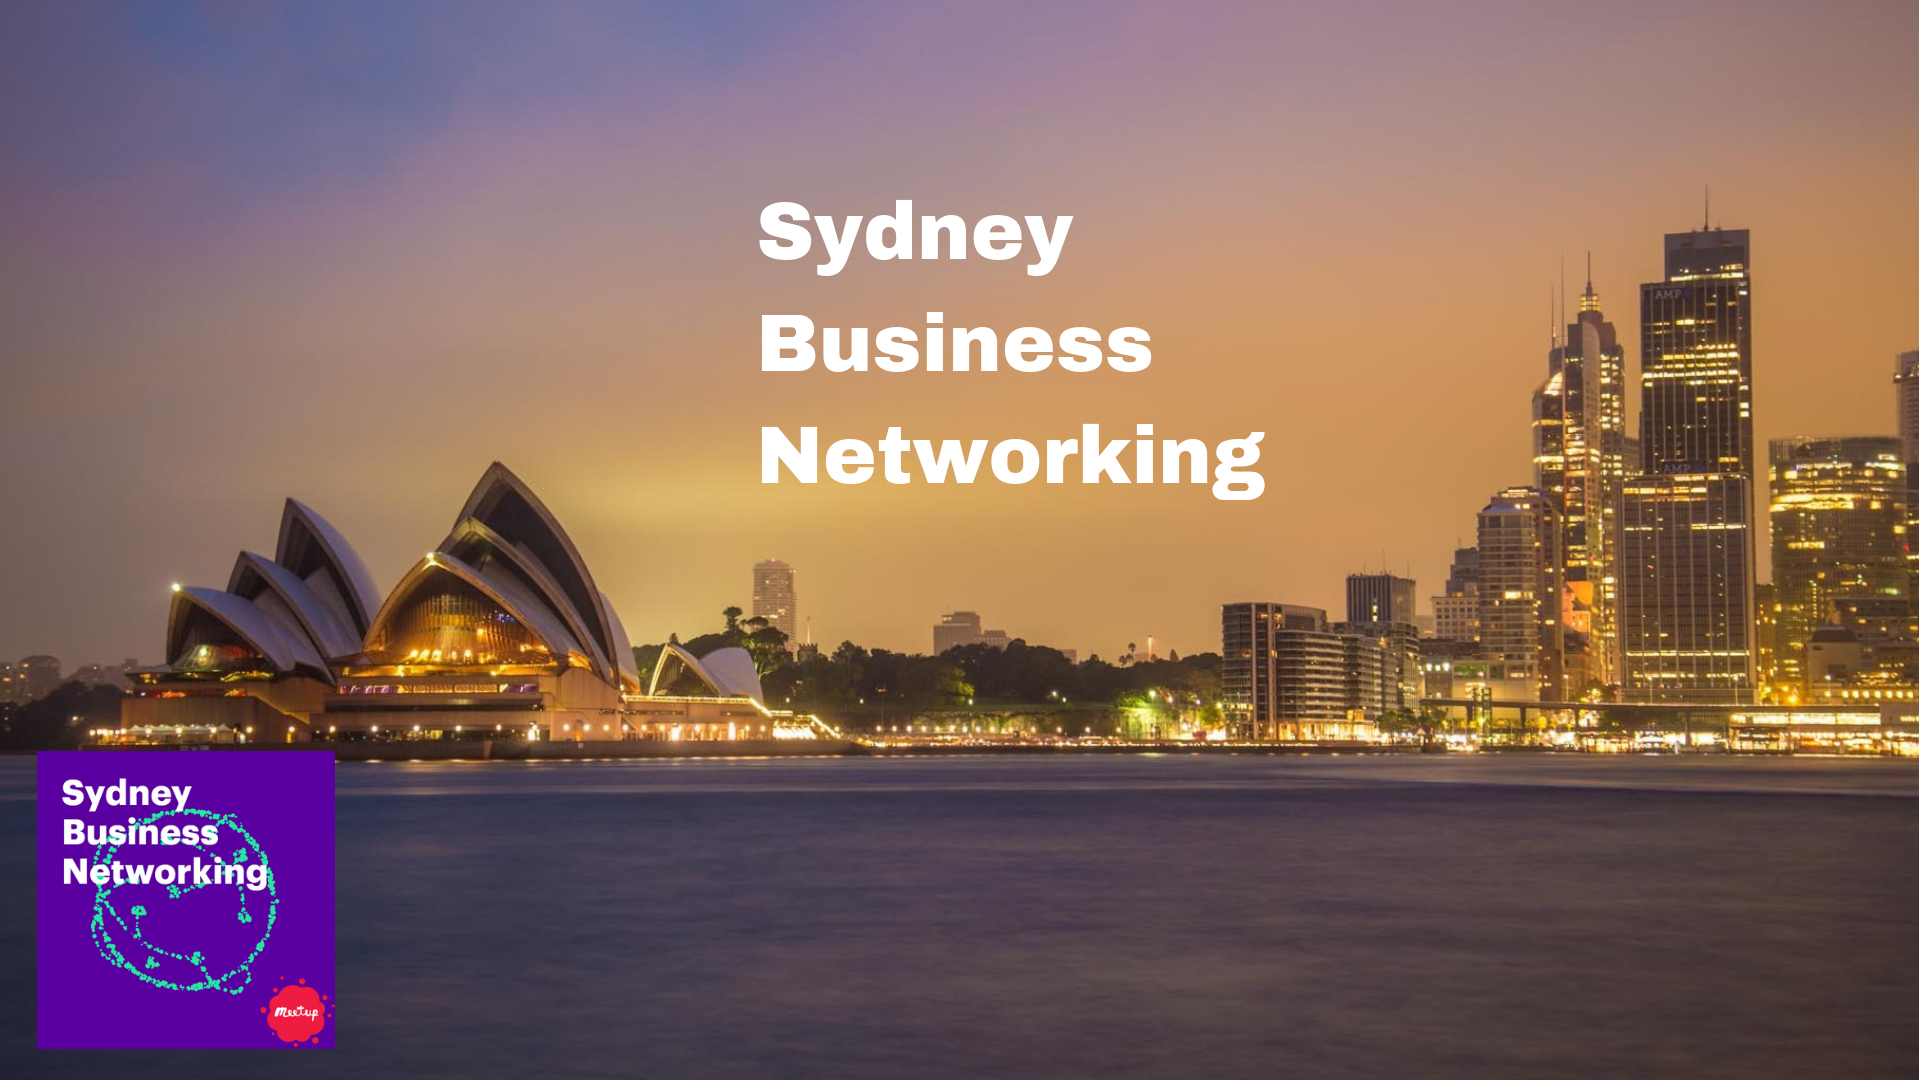 Sydney Business Networking